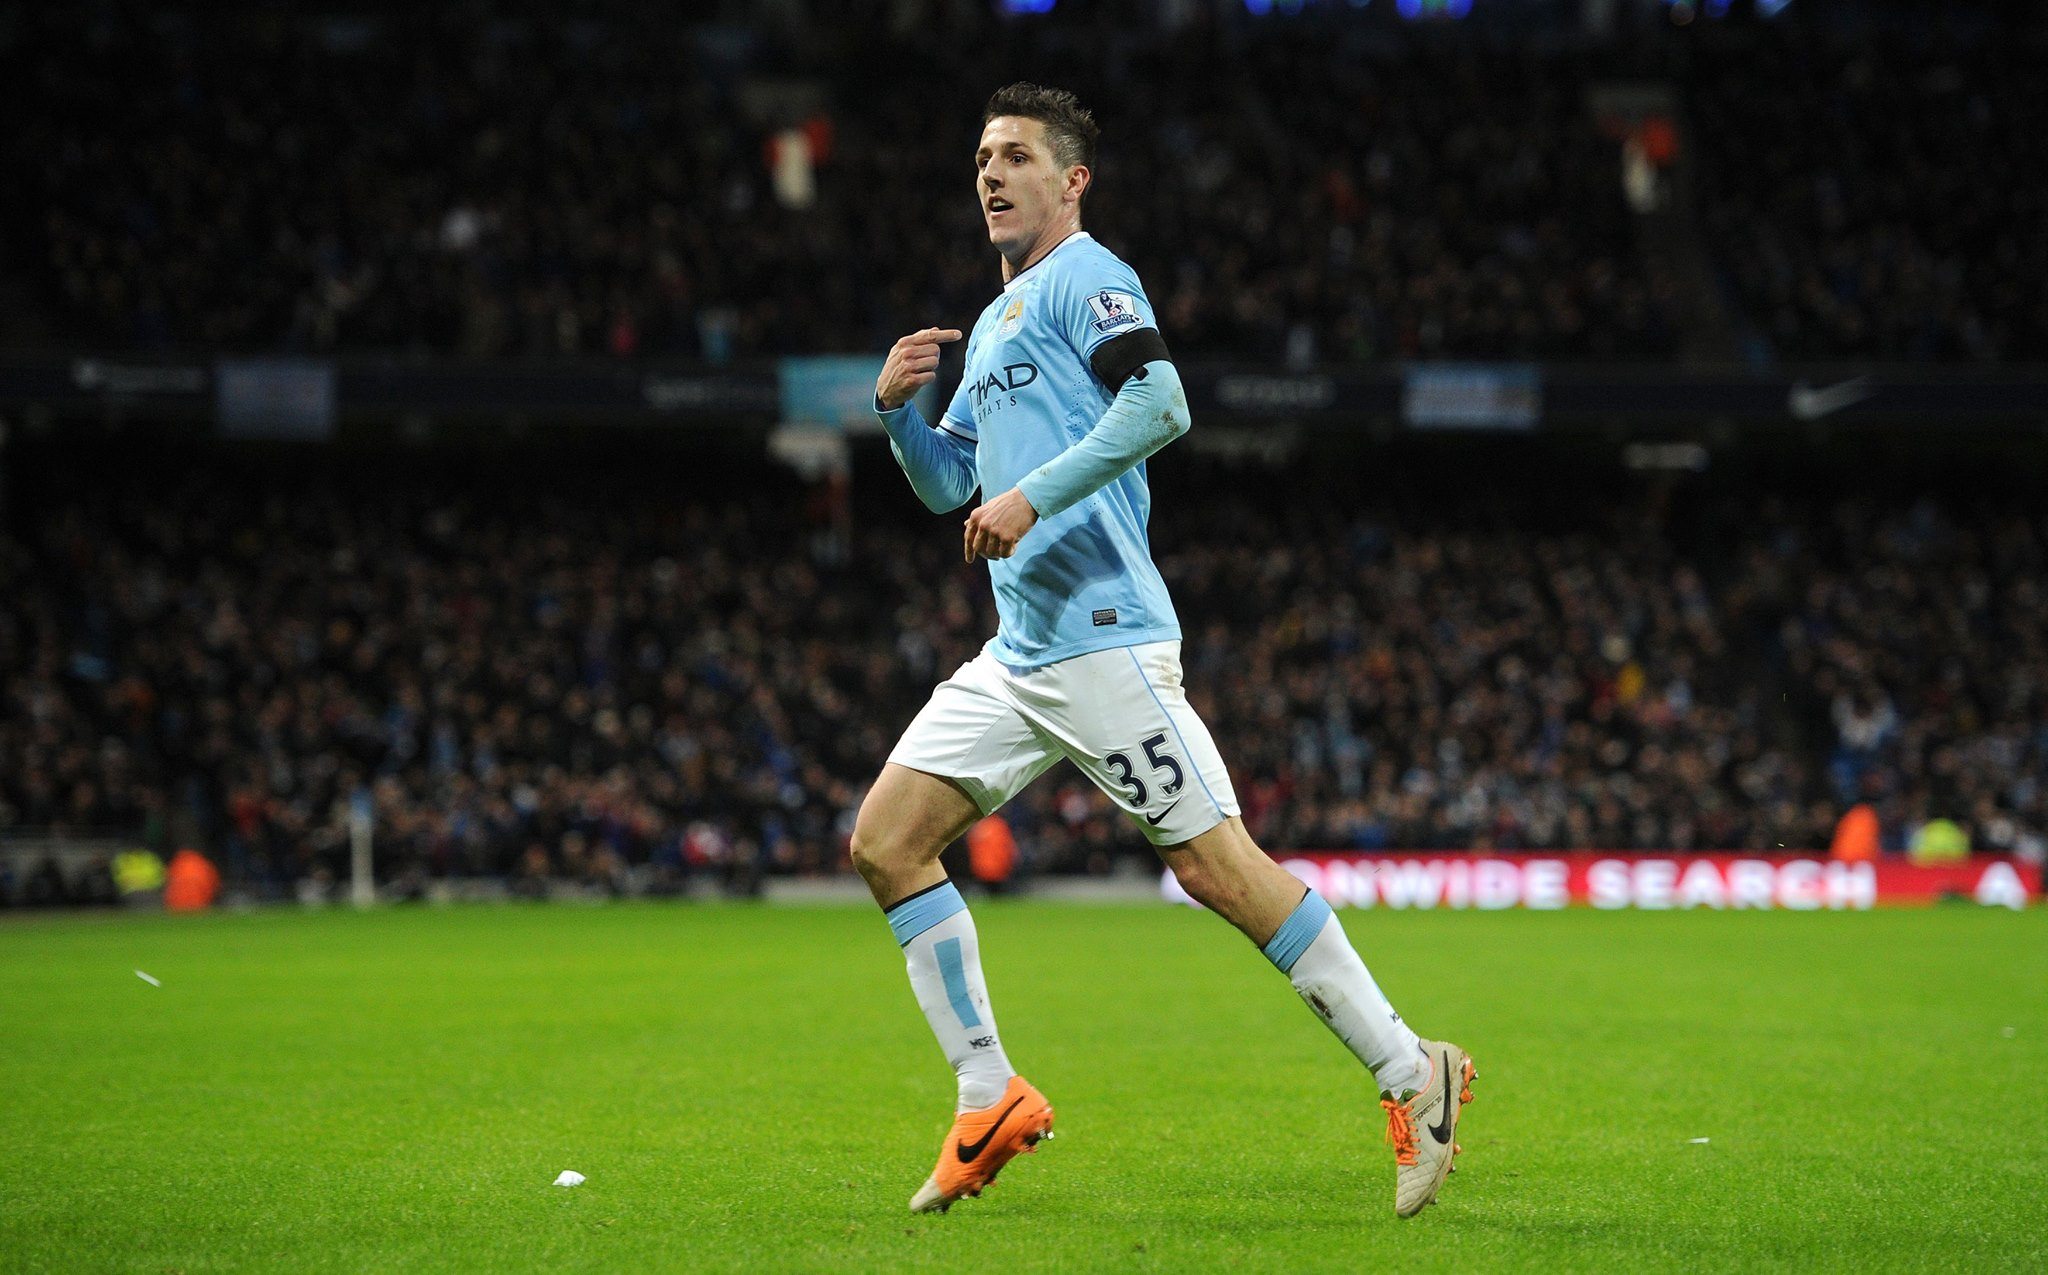 Better late than never - Jovetic can join City's Premier League push and score vital goals. Courtesy @MCFC